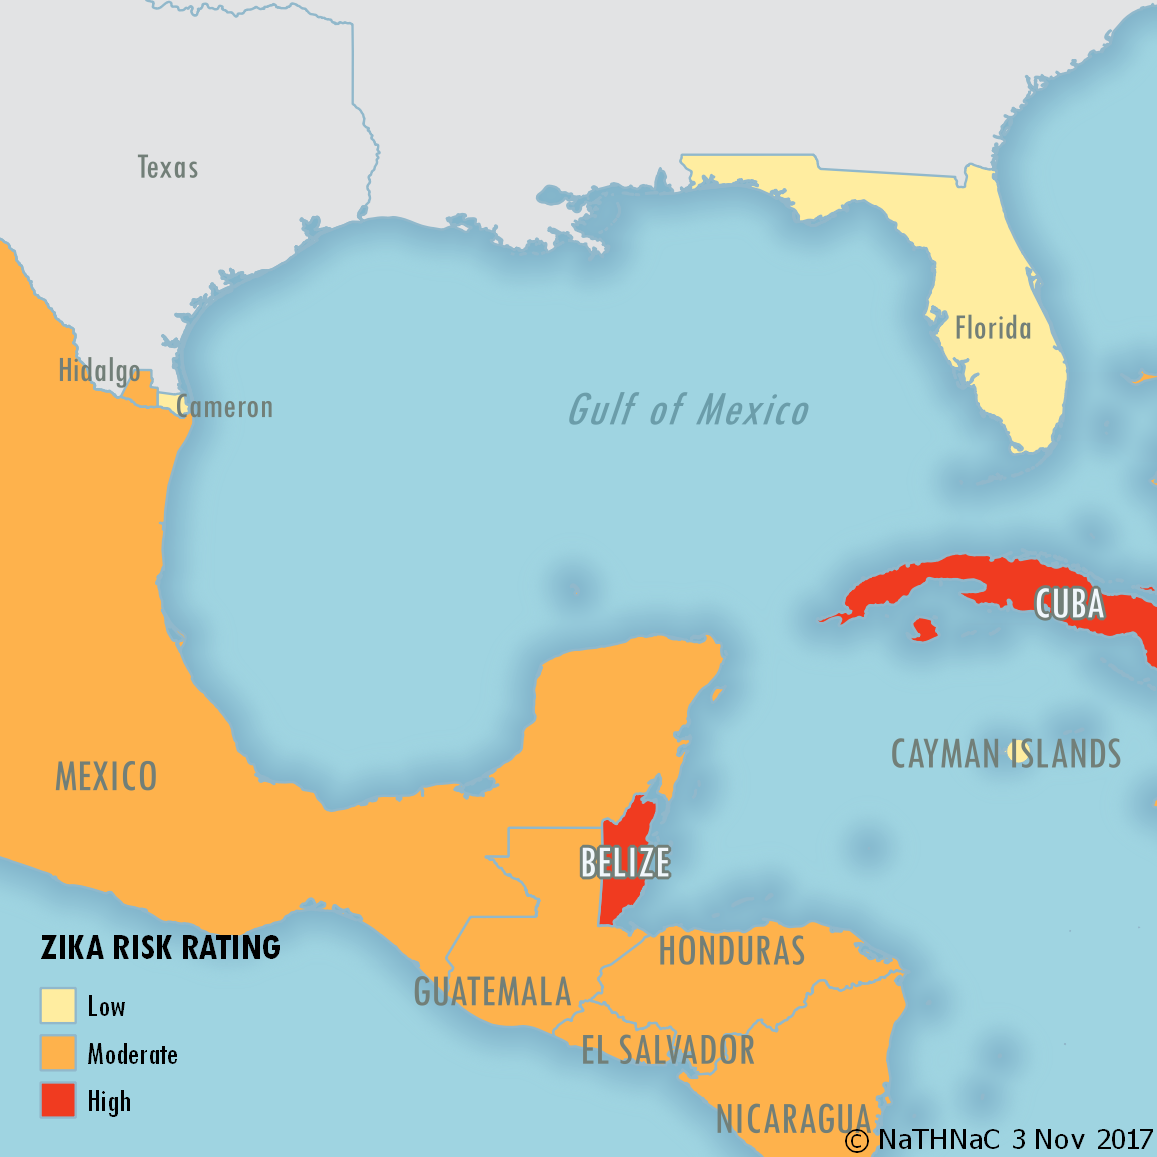 Zika Risk Gulf of Mexico